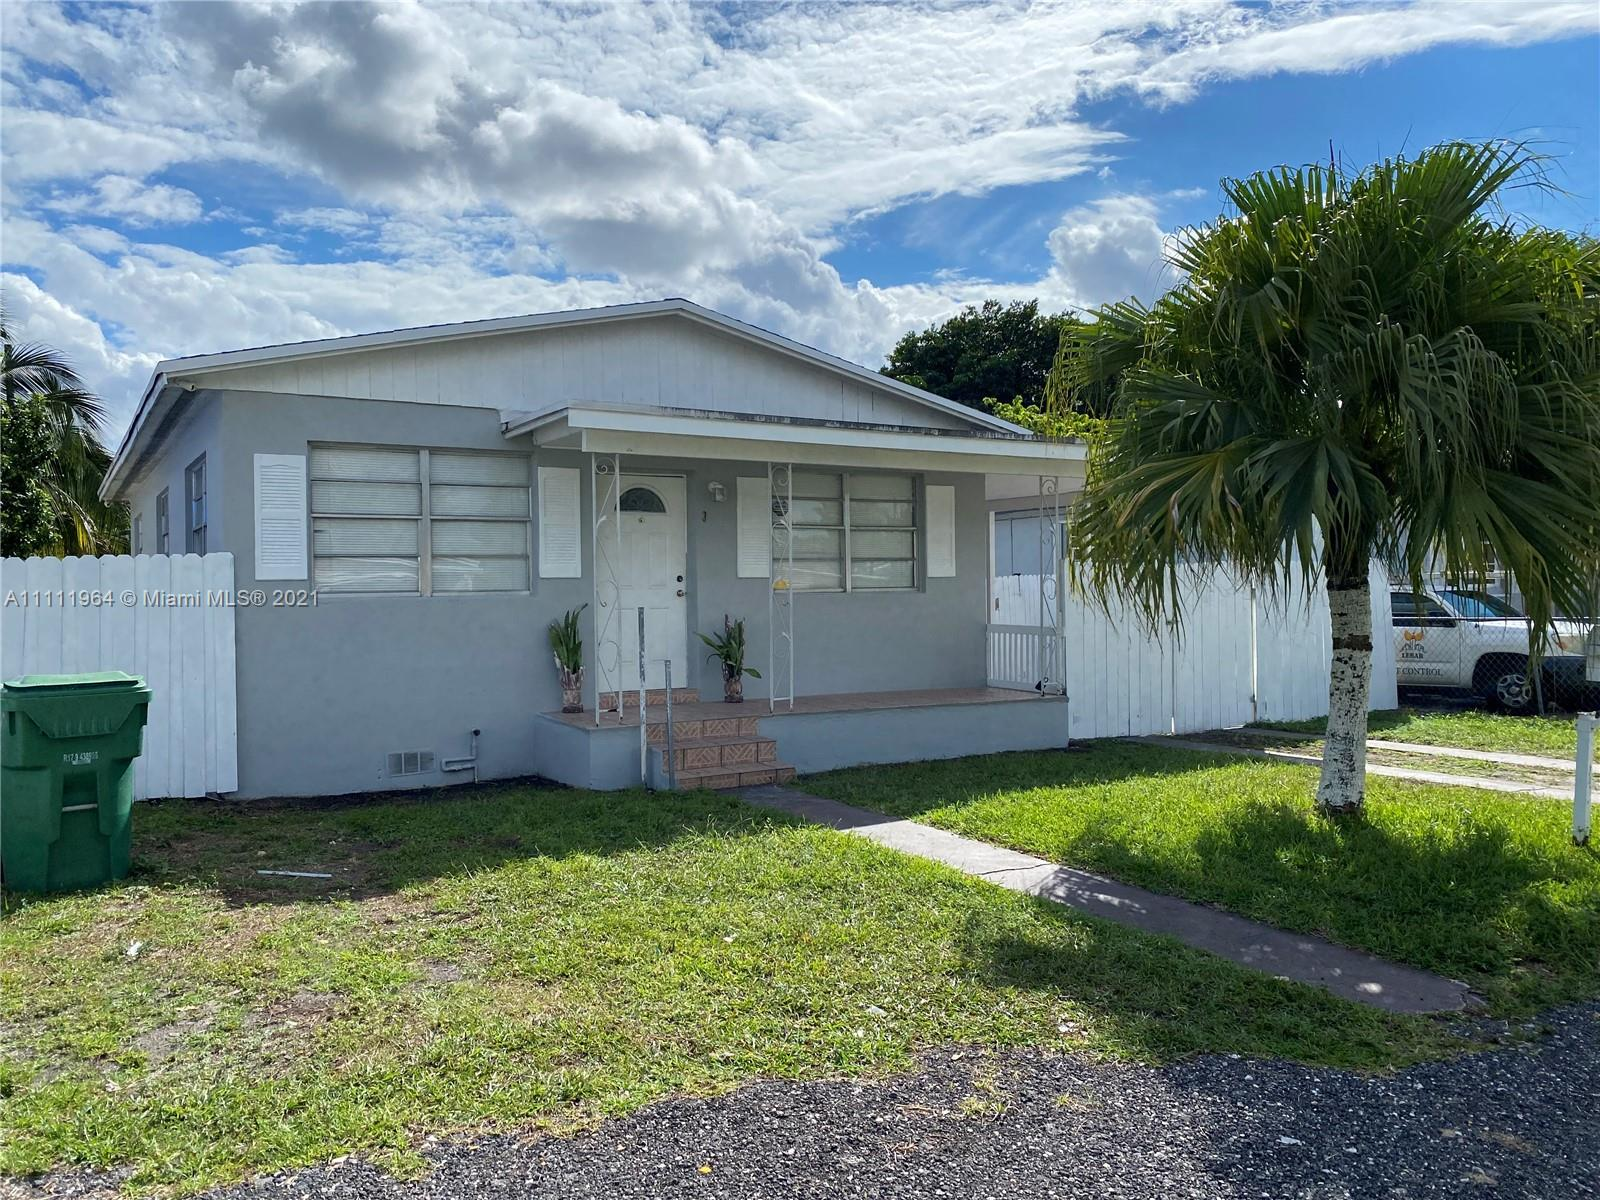 Single Family Home,For Sale,3164 NW 132nd Ter, Opa-Locka, Florida 33054,Brickell,realty,broker,condos near me